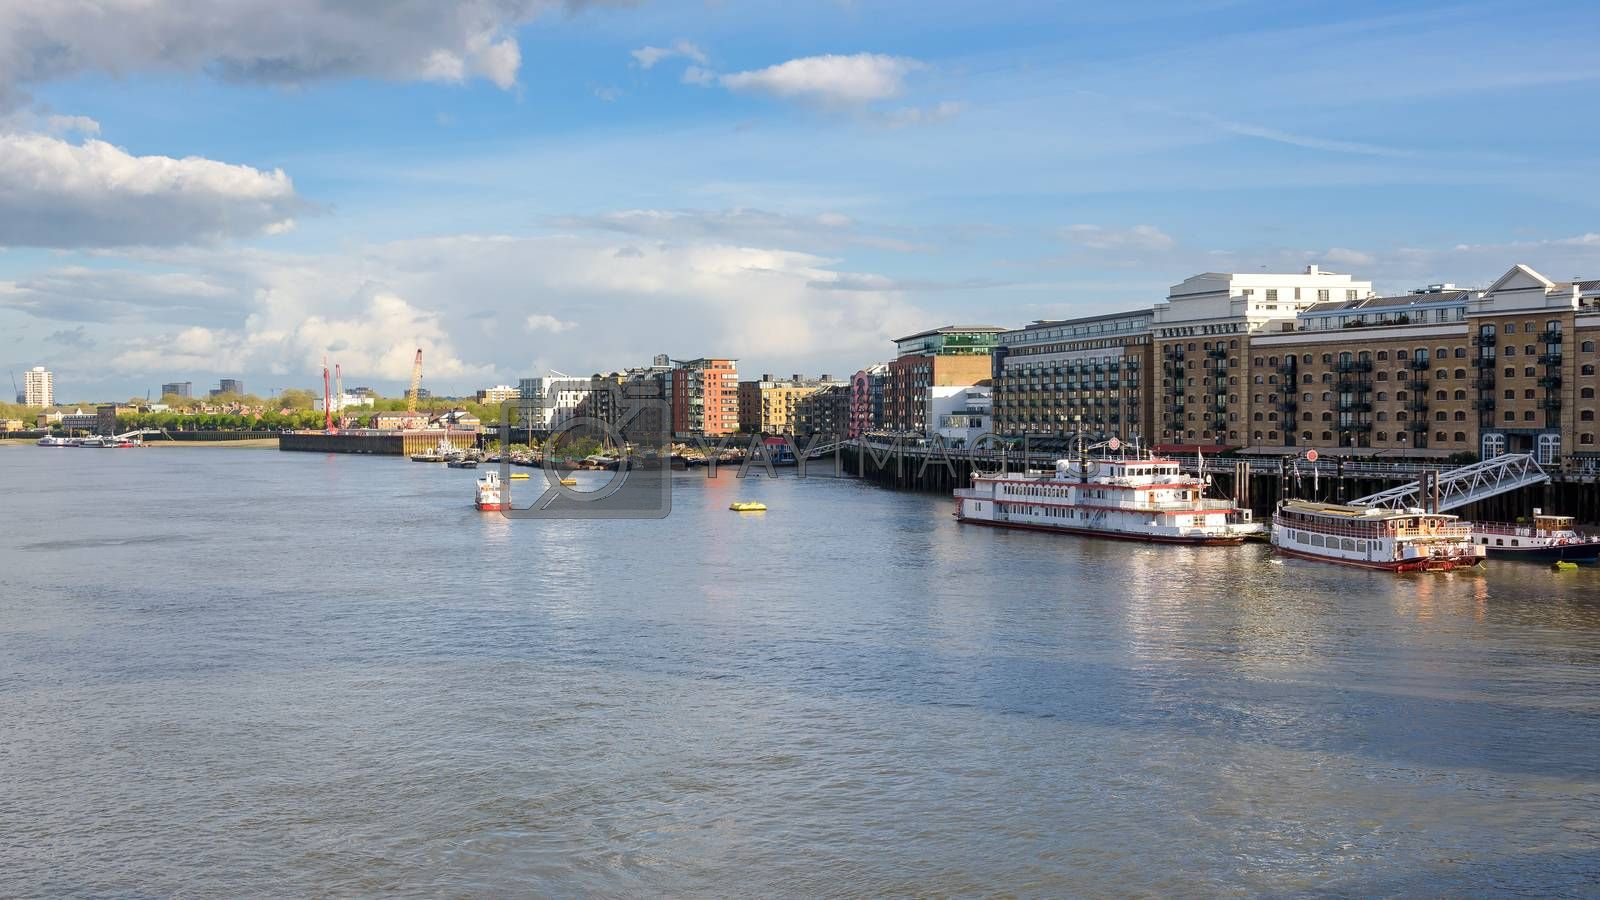 Panoramic view sountbank of the Thames River in London, UK